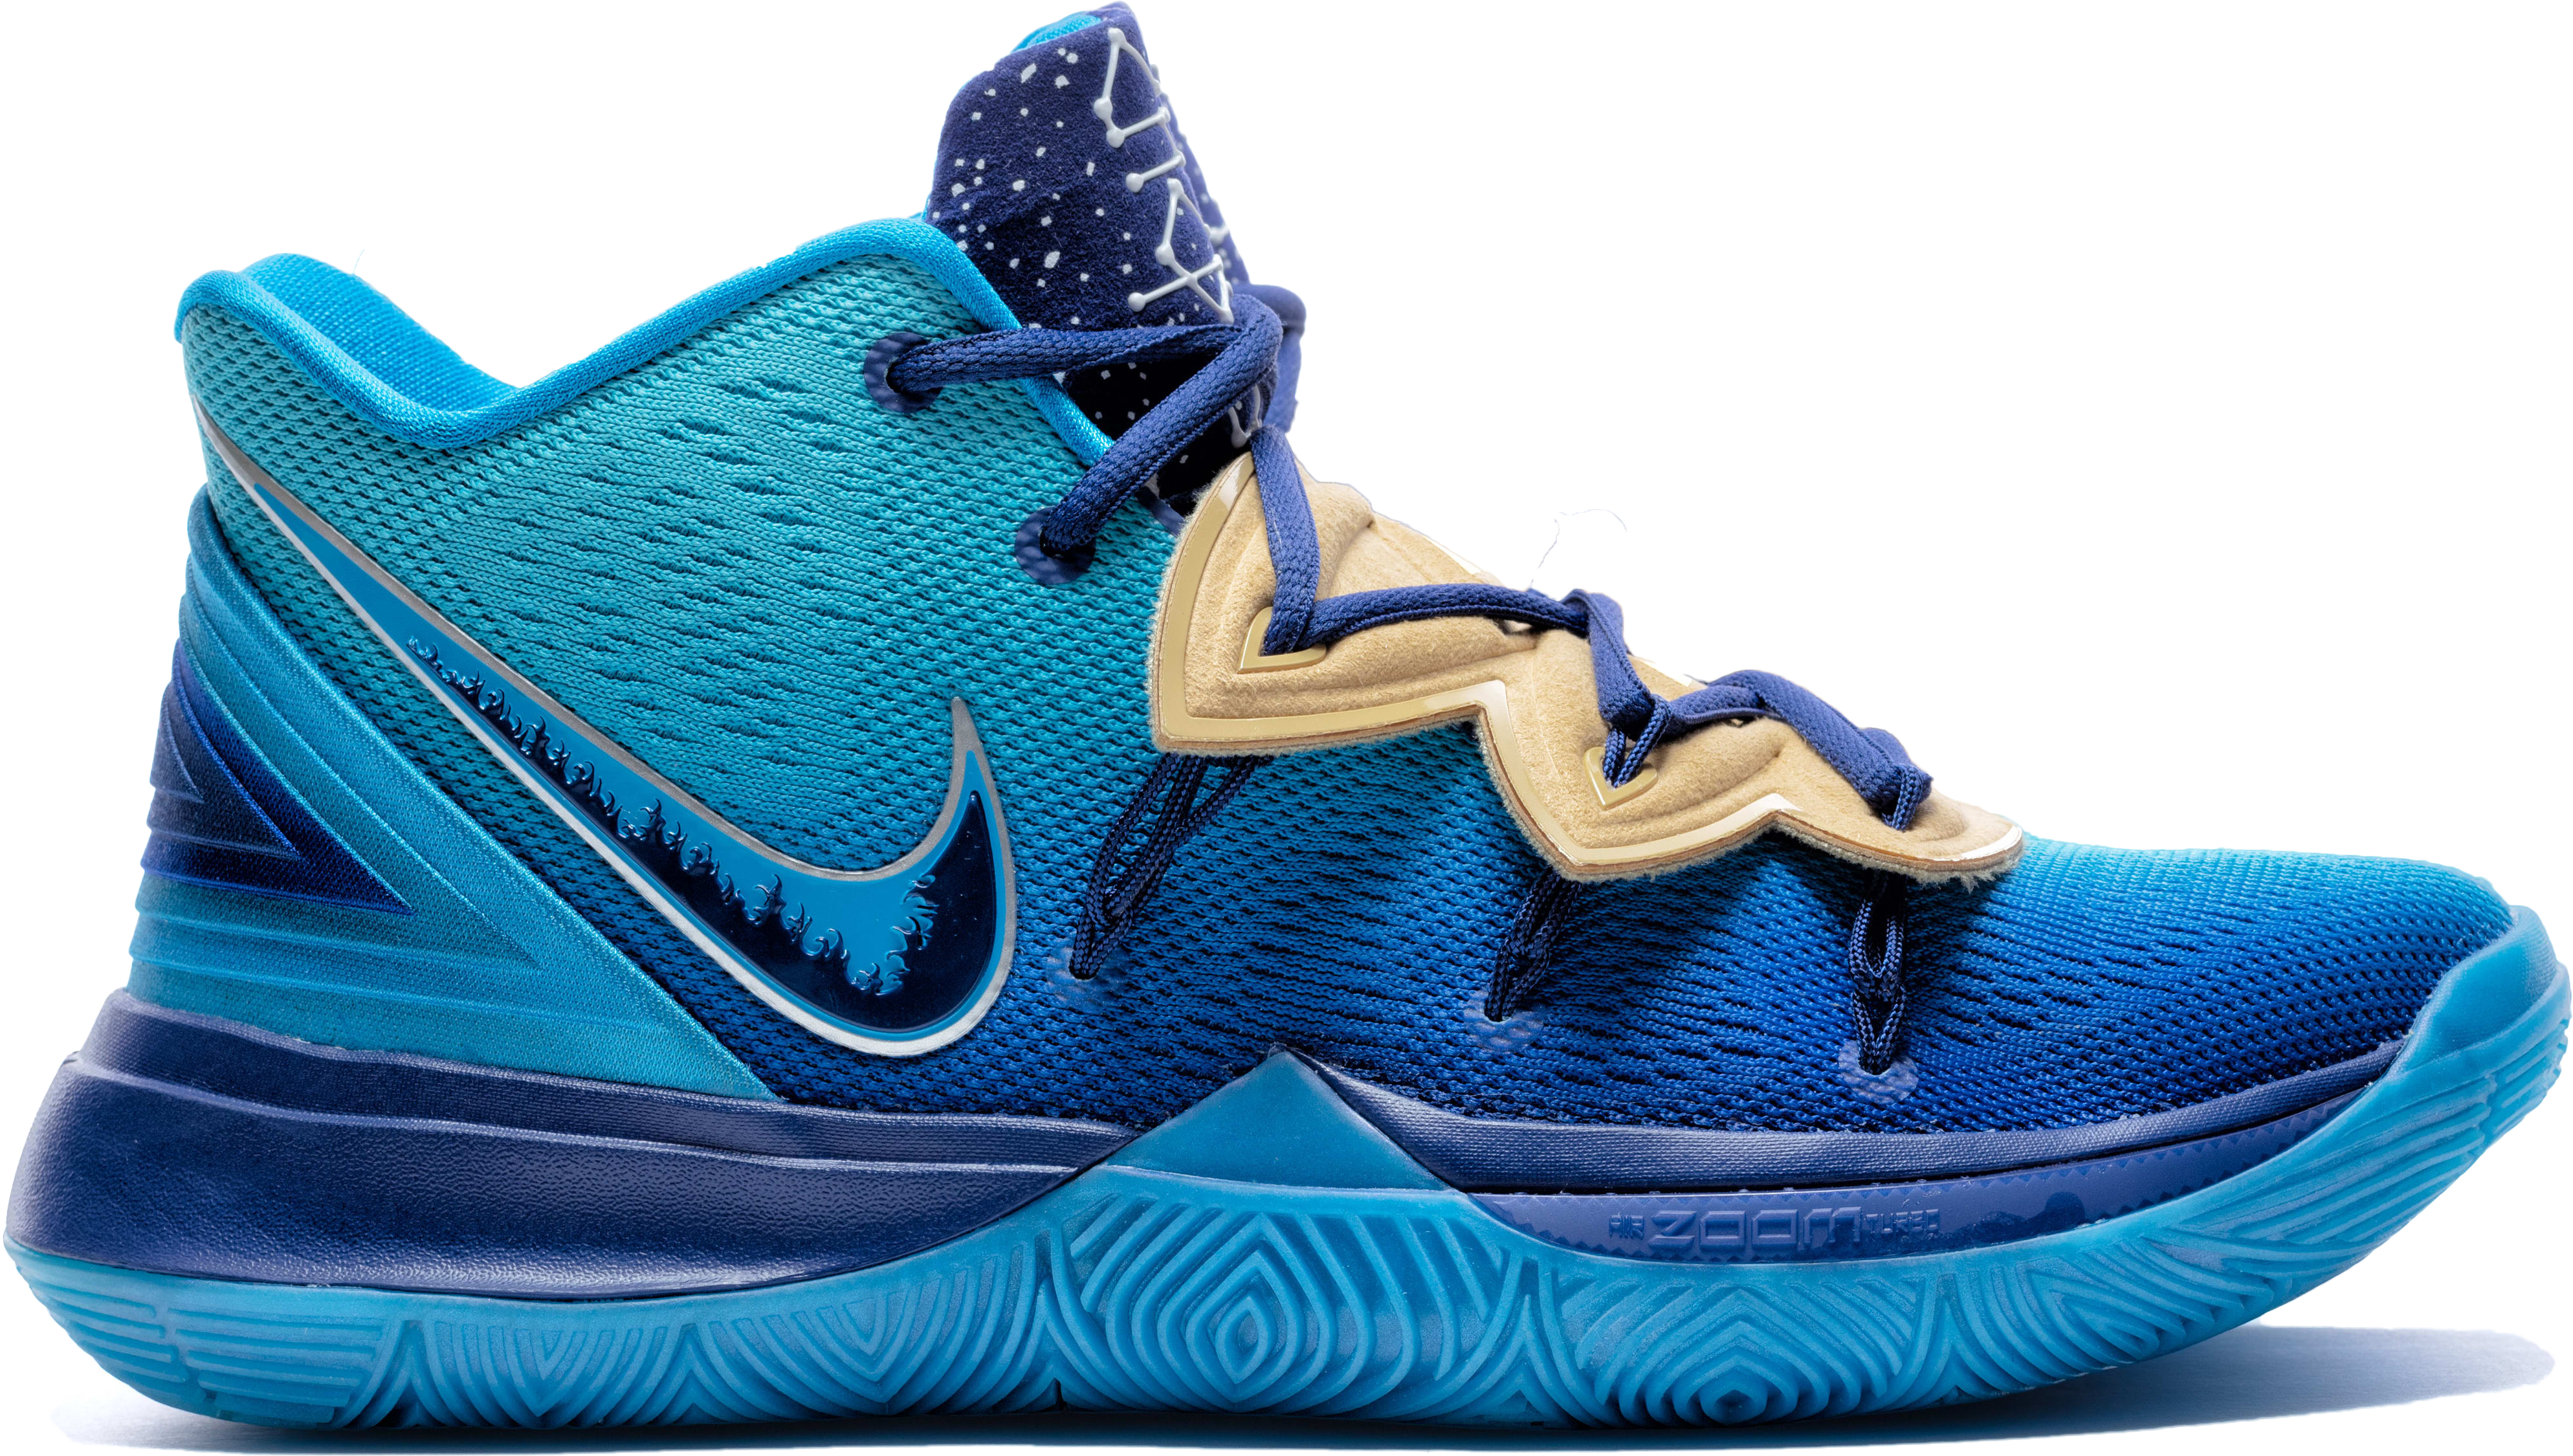 Nike Kyrie 5 Concepts Orions Belt